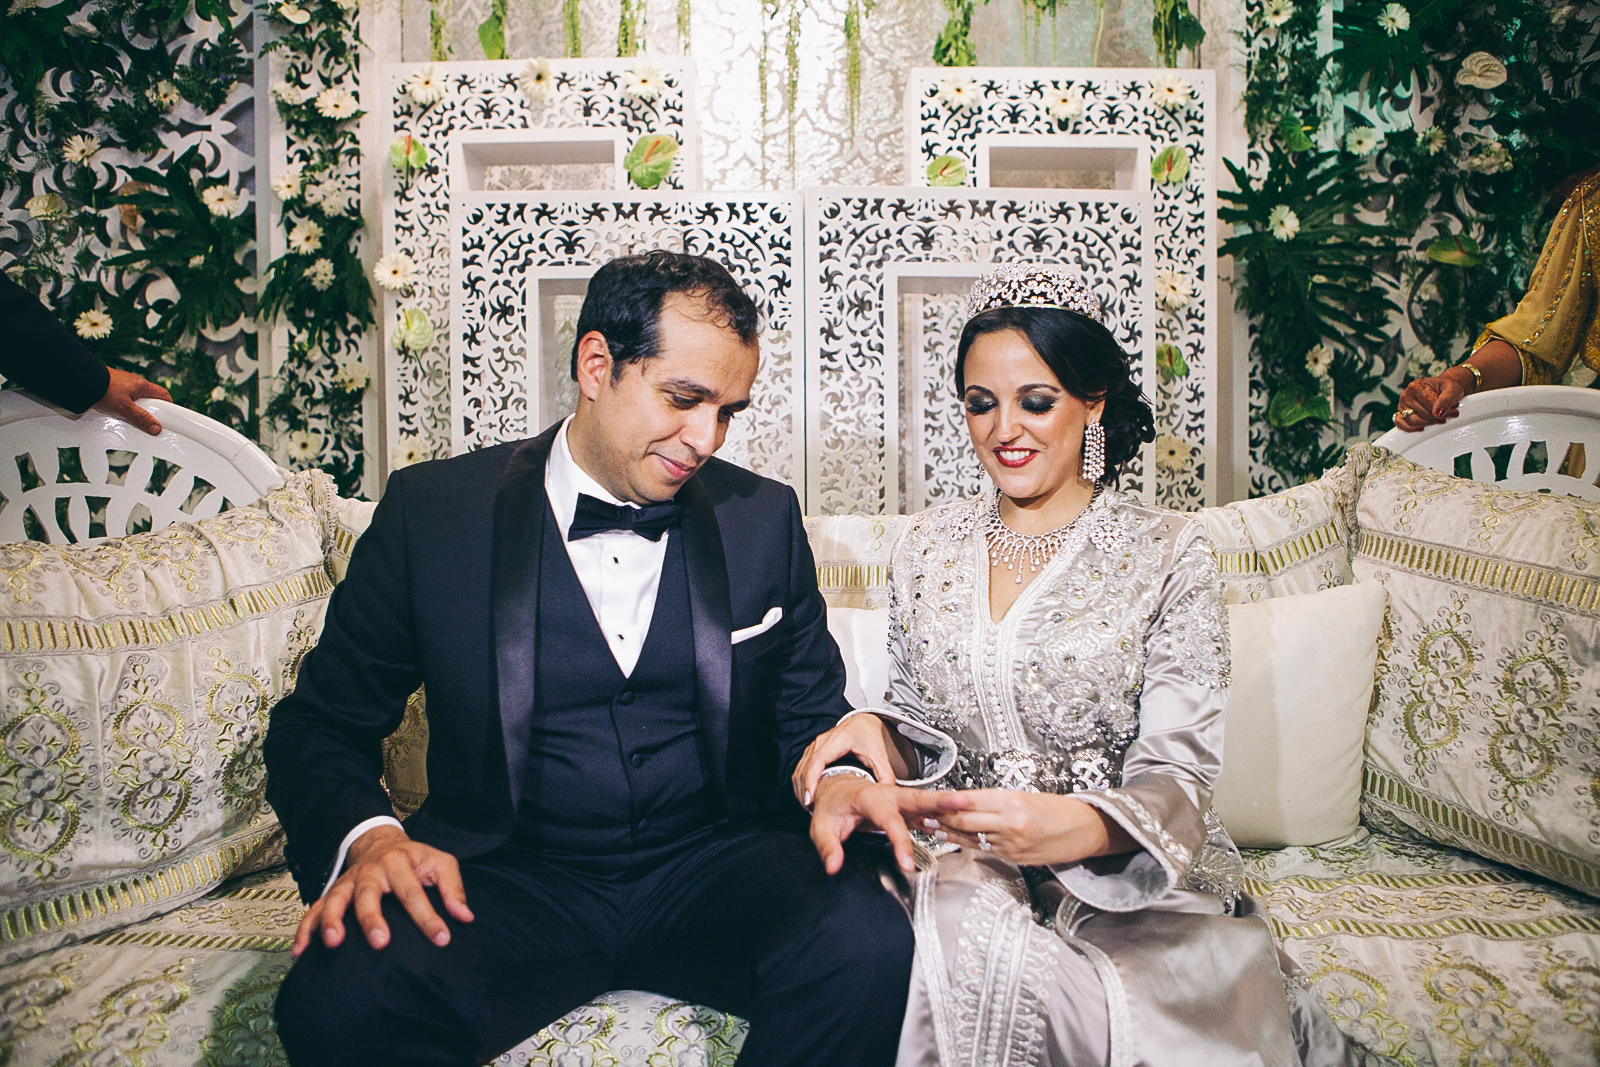 traditional_moroccan_wedding_photographry_casablanca_morocco_houda_vivek_ebony_siovhan_bokeh_photography_092.jpg